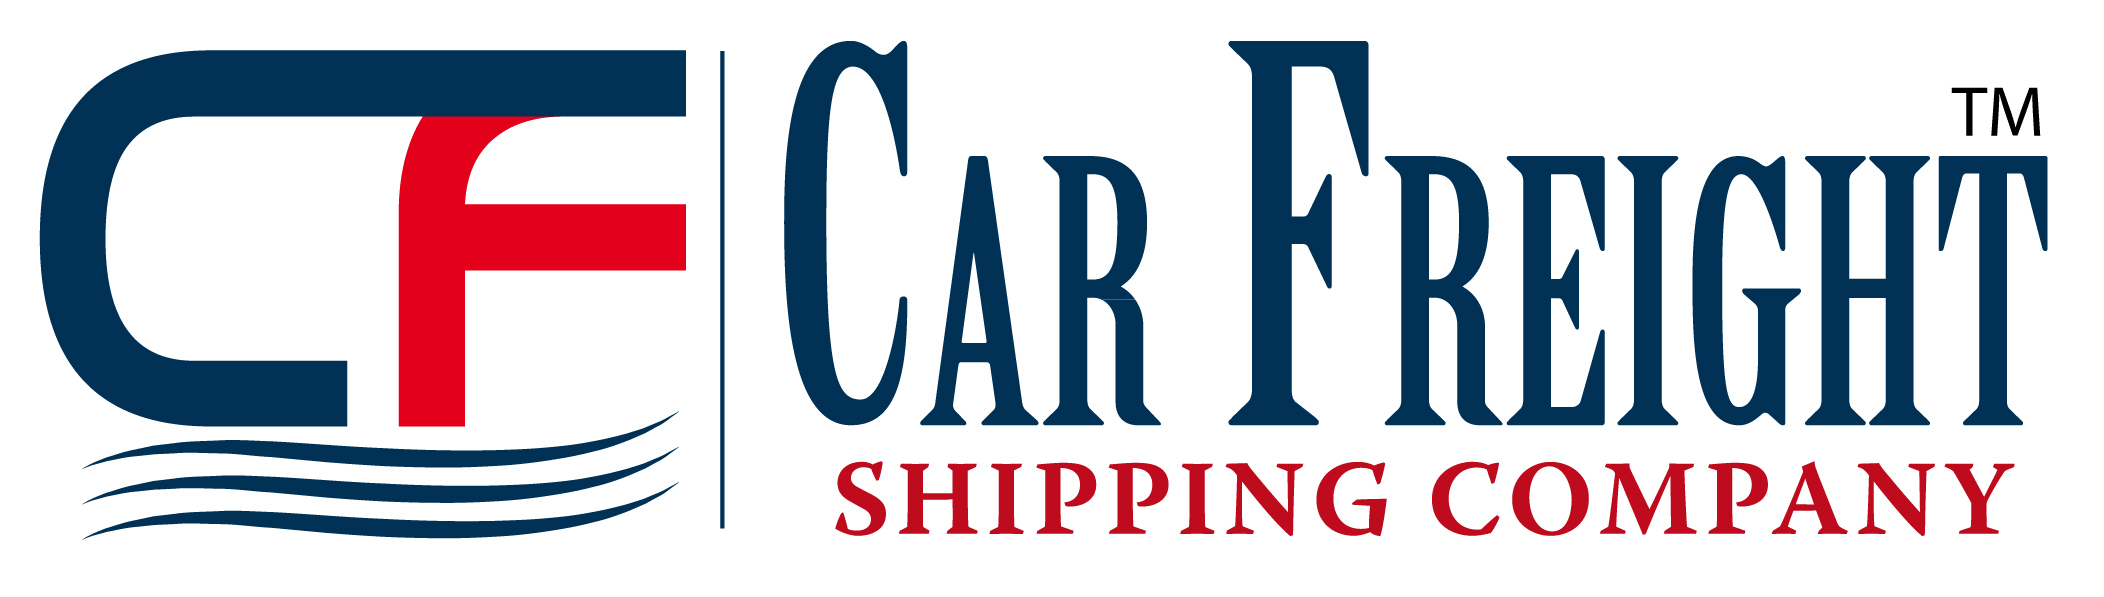 Logo_CarFreight.jpg